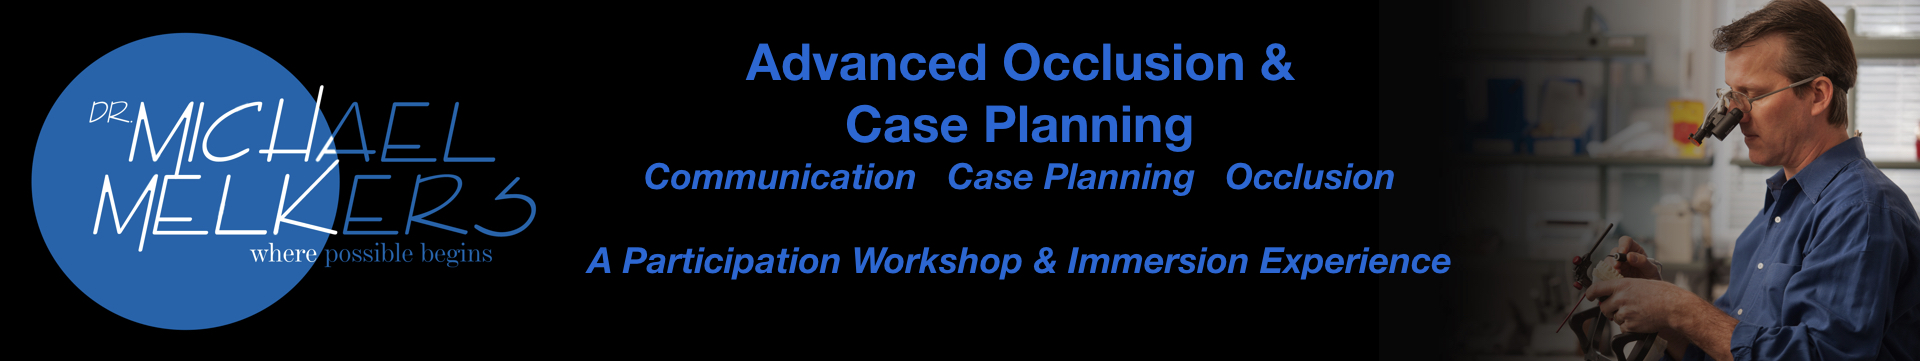 Advanced Occlusion & Case Planning Workshop